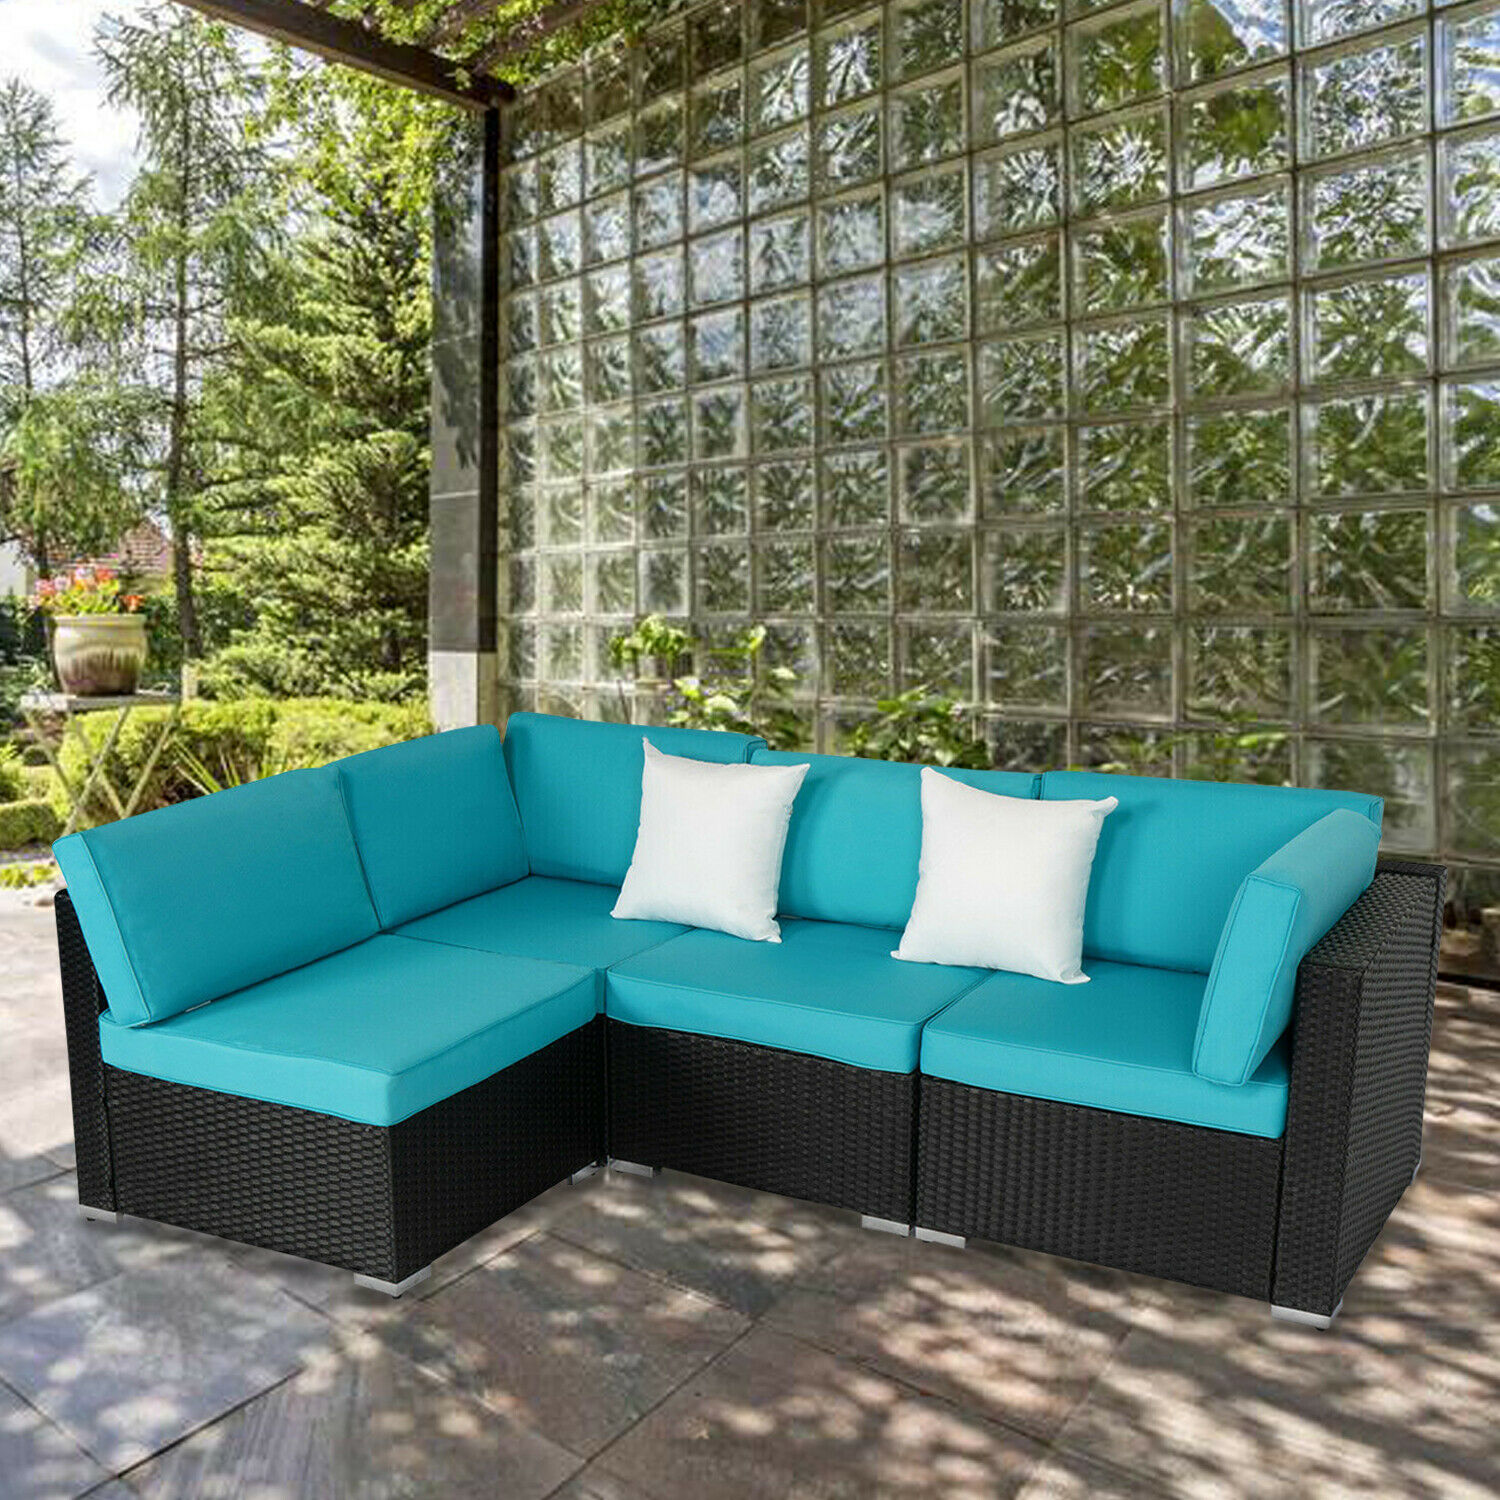 Garden Furniture - 4 pcs Outdoor Patio Wicker Rattan Sofa Set Garden Couch Furniture w / 2 Pillows